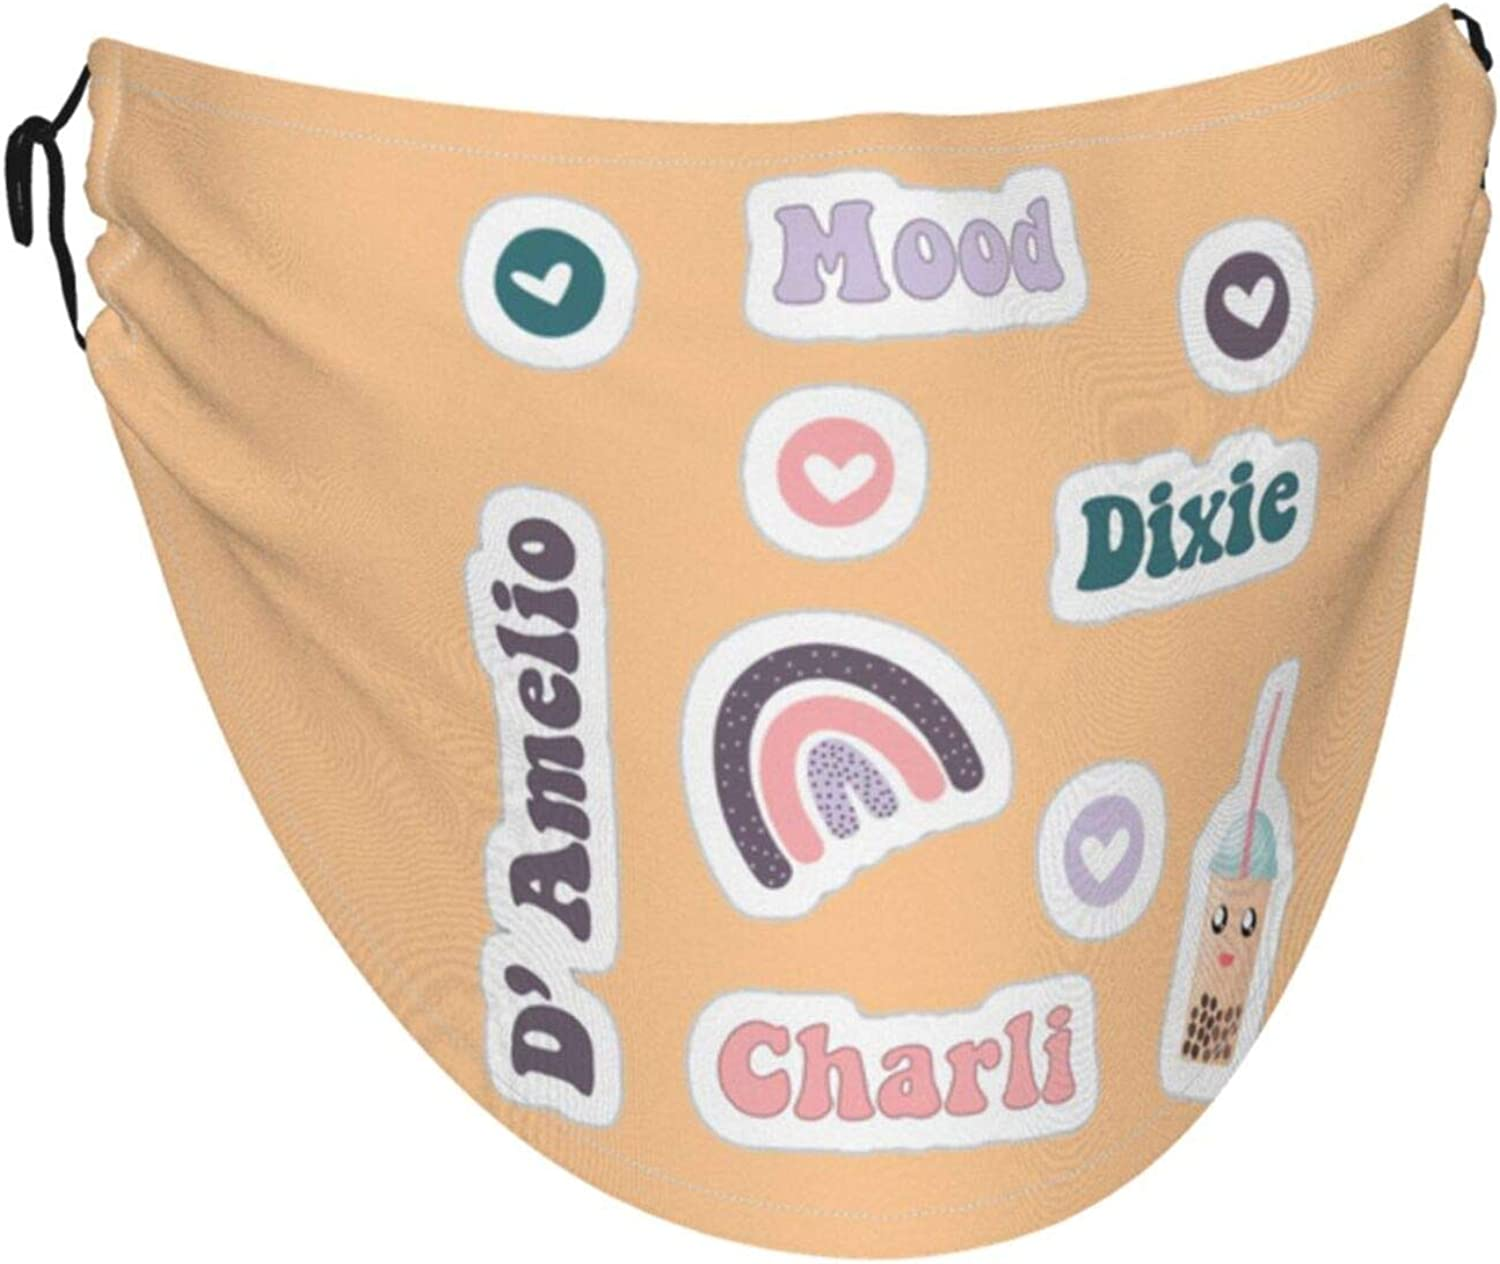 Charli Damelioface Mask With Adjustable Ear Loops Cloth Reusable Face Face Mask Is Made Of Soft And Skin-Friendly Ice Silk Fabric